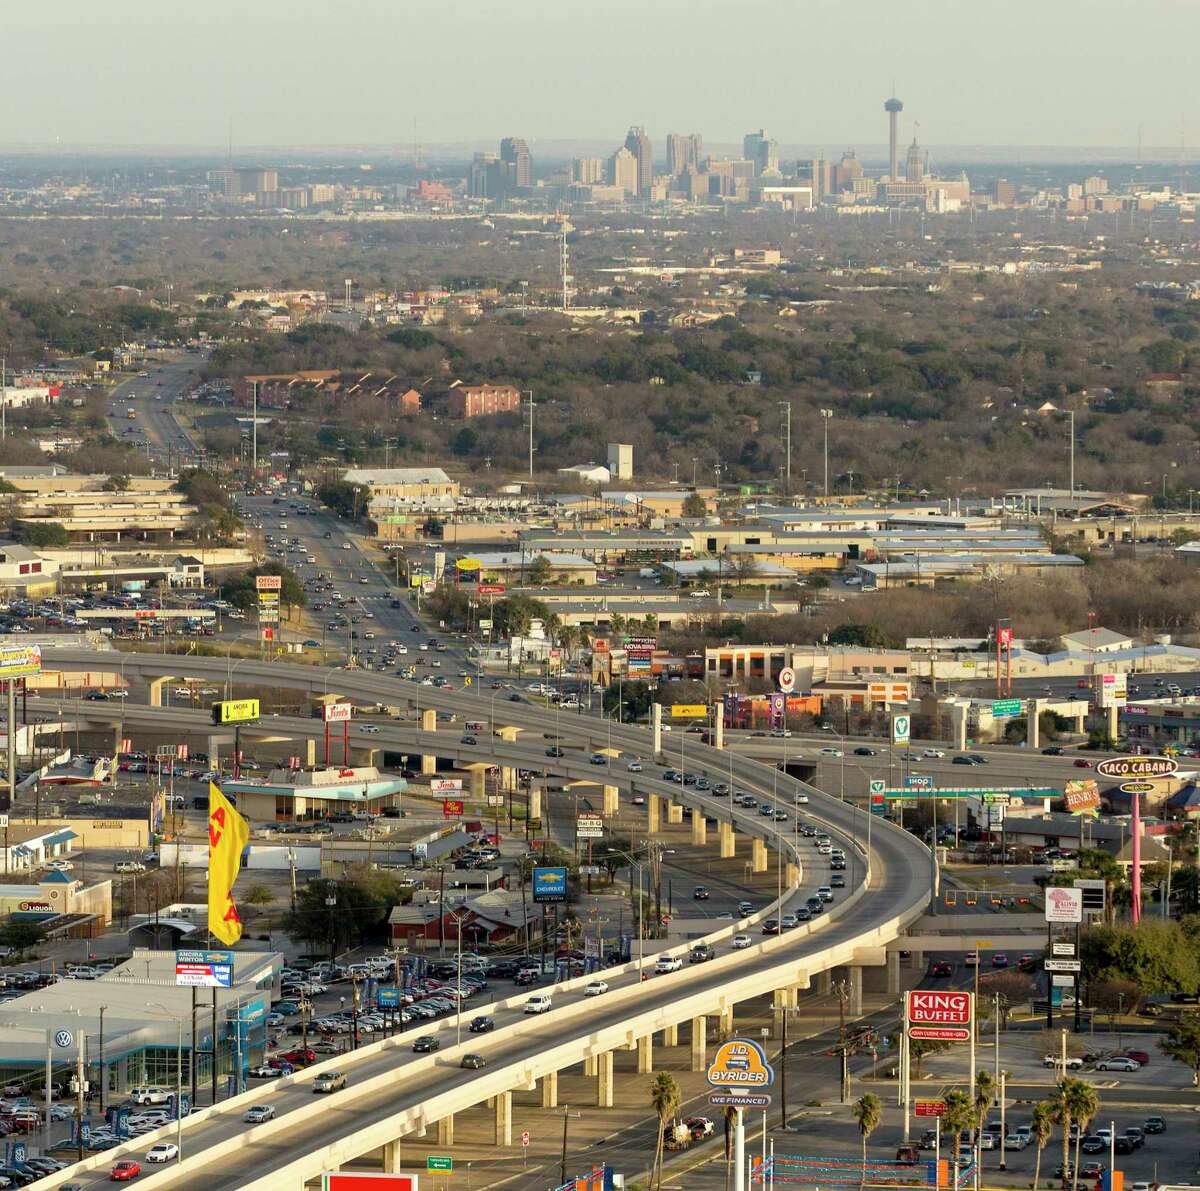 Investing in public transit will ease traffic congestion as San Antonio's population continues to grow.